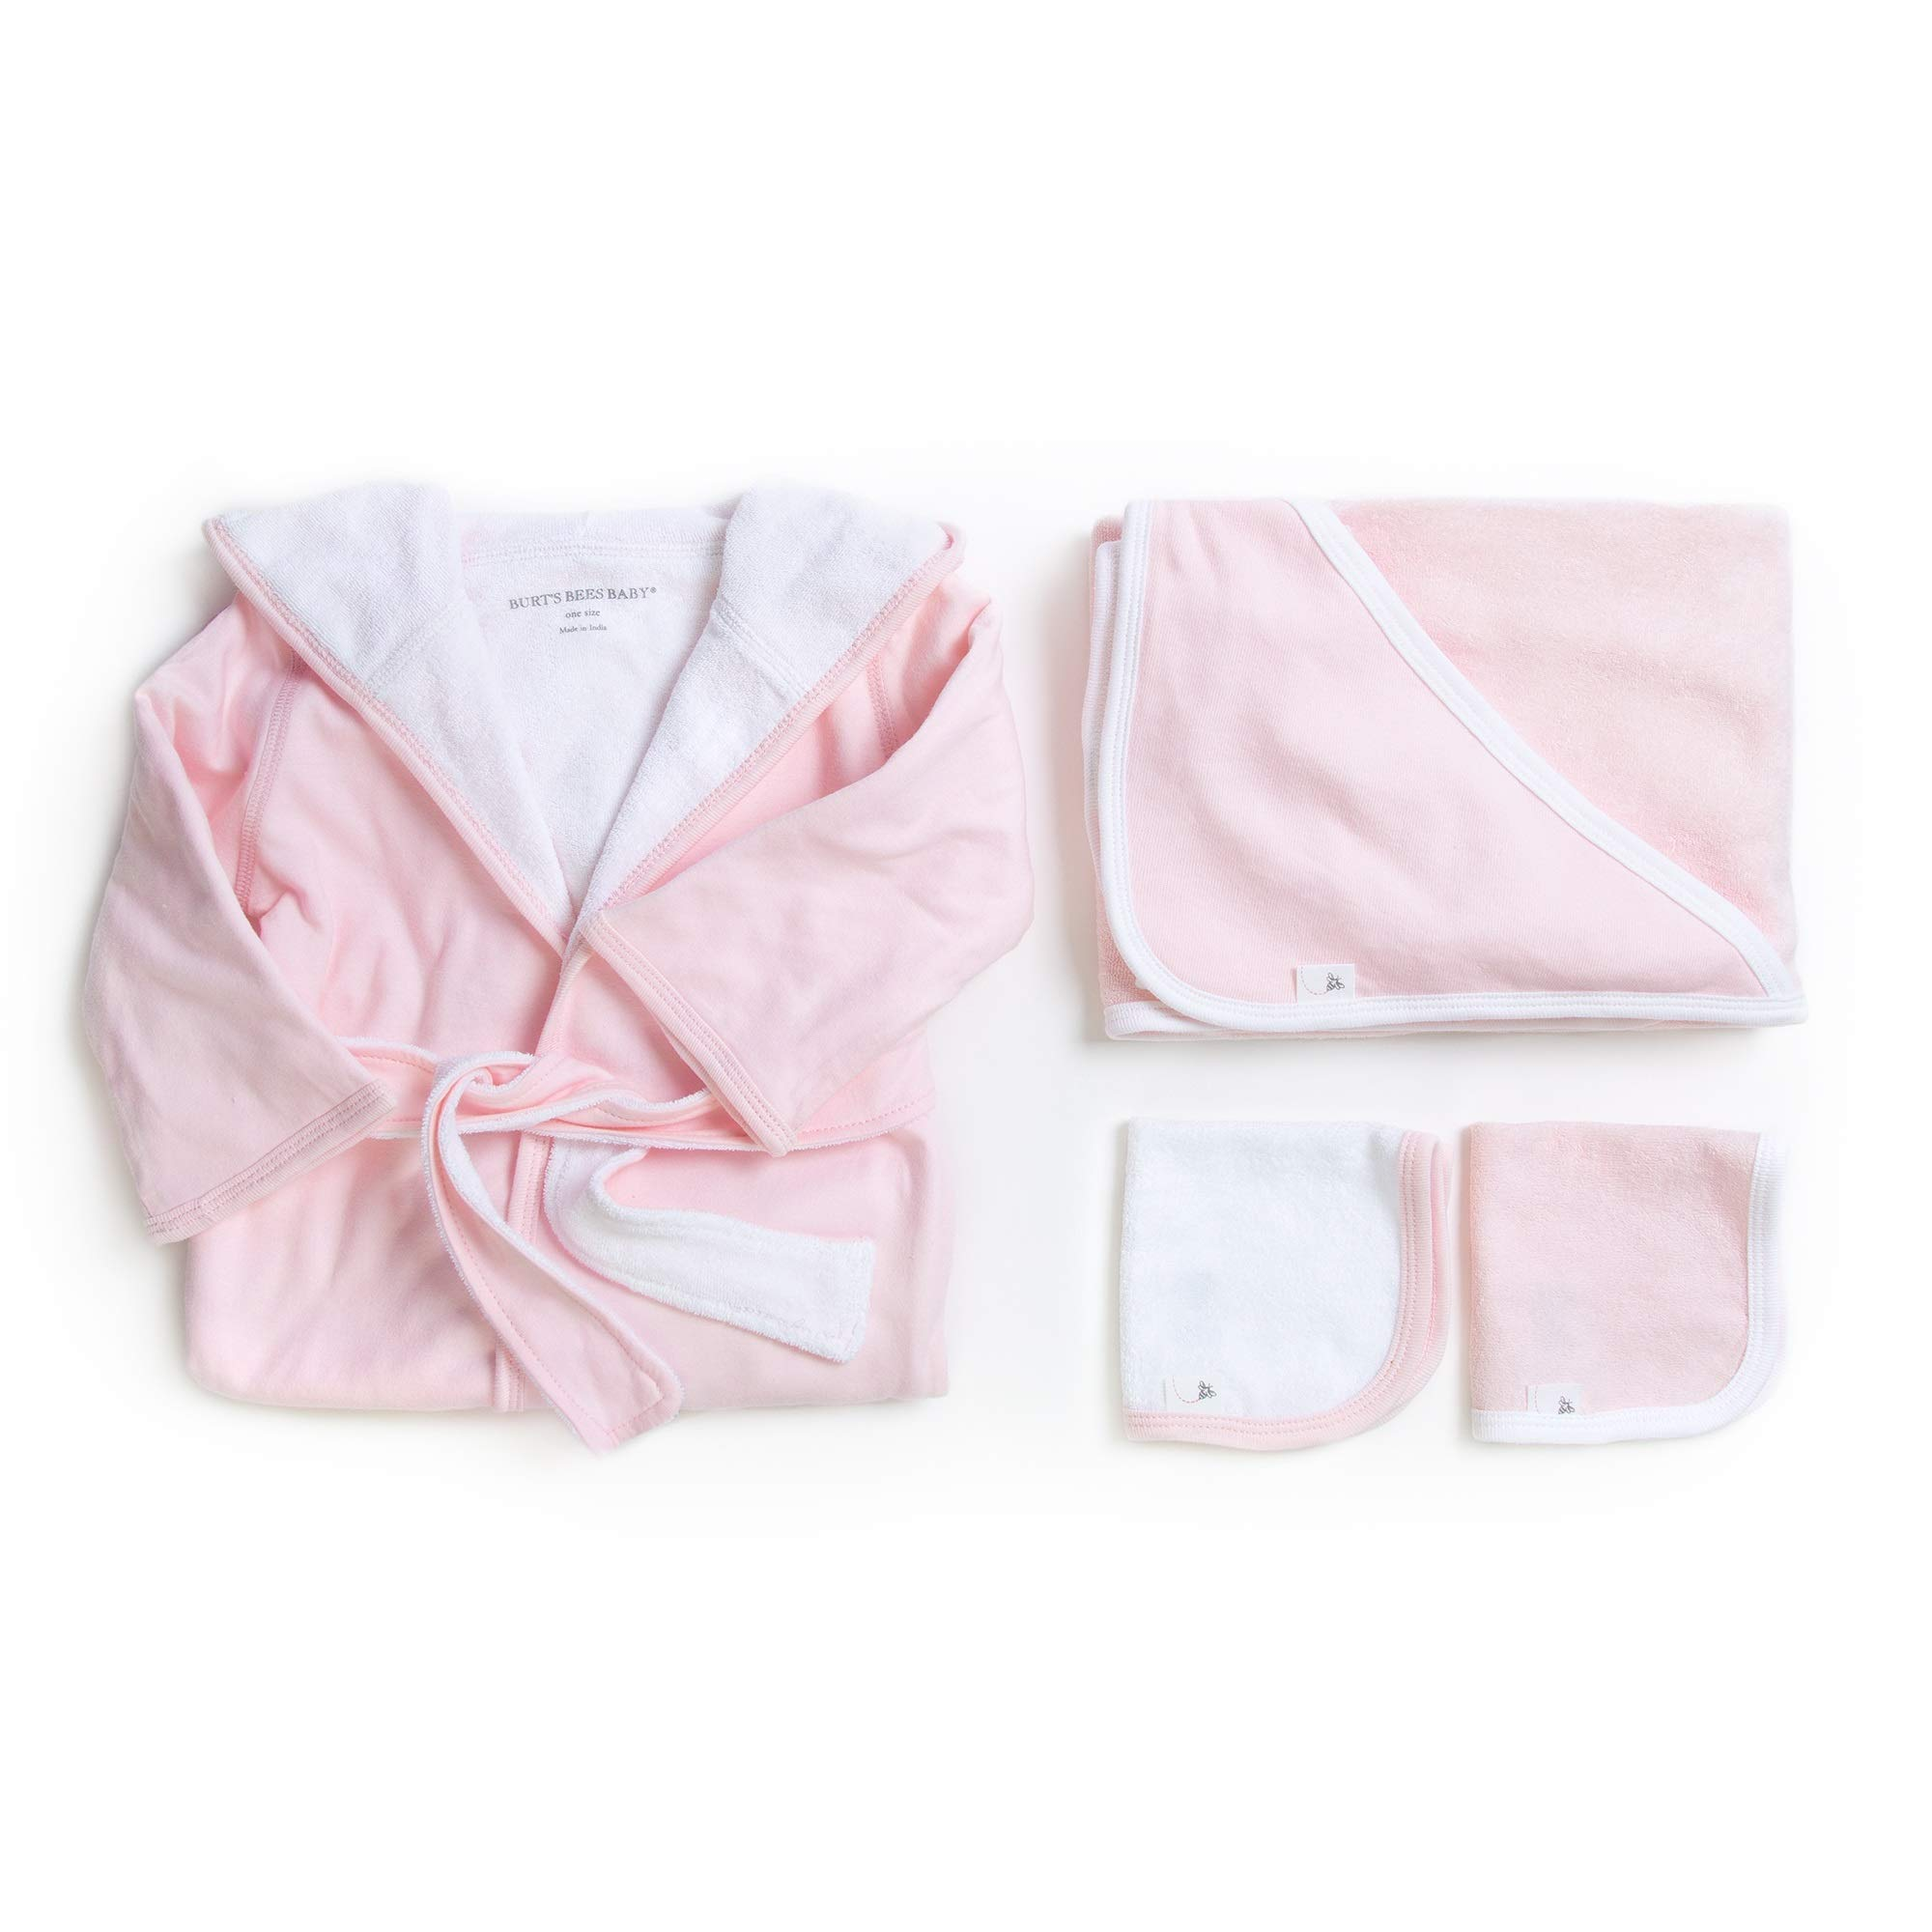 Burt's Bees Baby - Bathtime Gift Bundle - Includes Bathrobe, Hooded Towel & Washcloths, 100% Organic Cotton (Blossom Pink) by Burt's Bees Baby